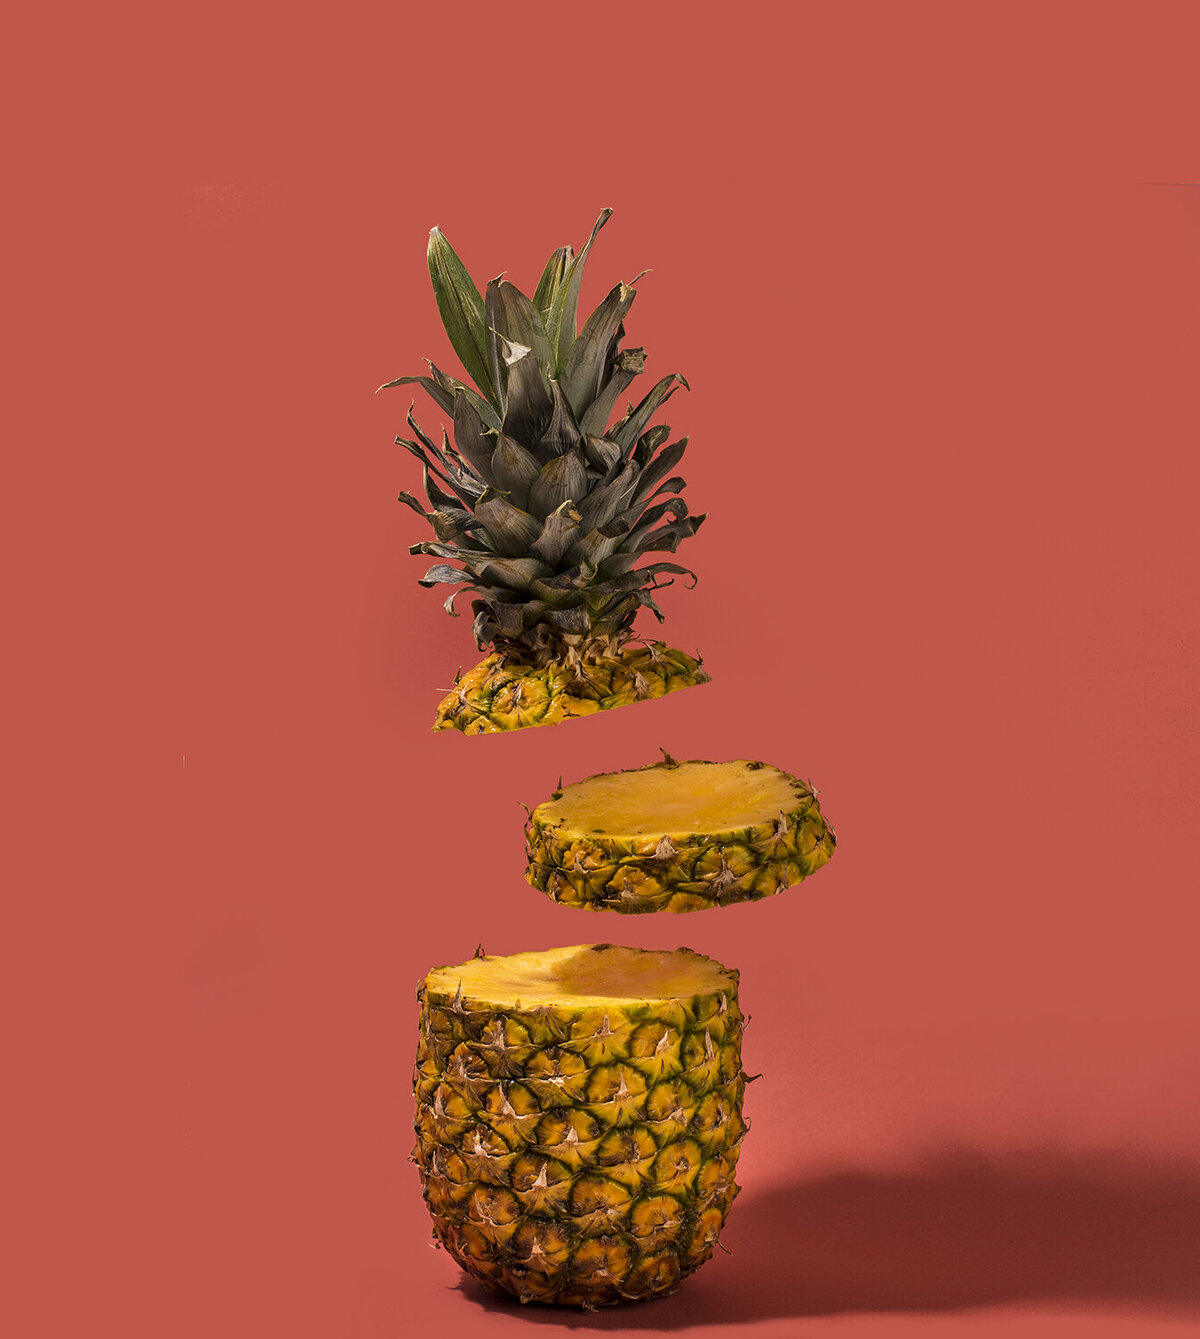 sliced pineapple photograph with slices